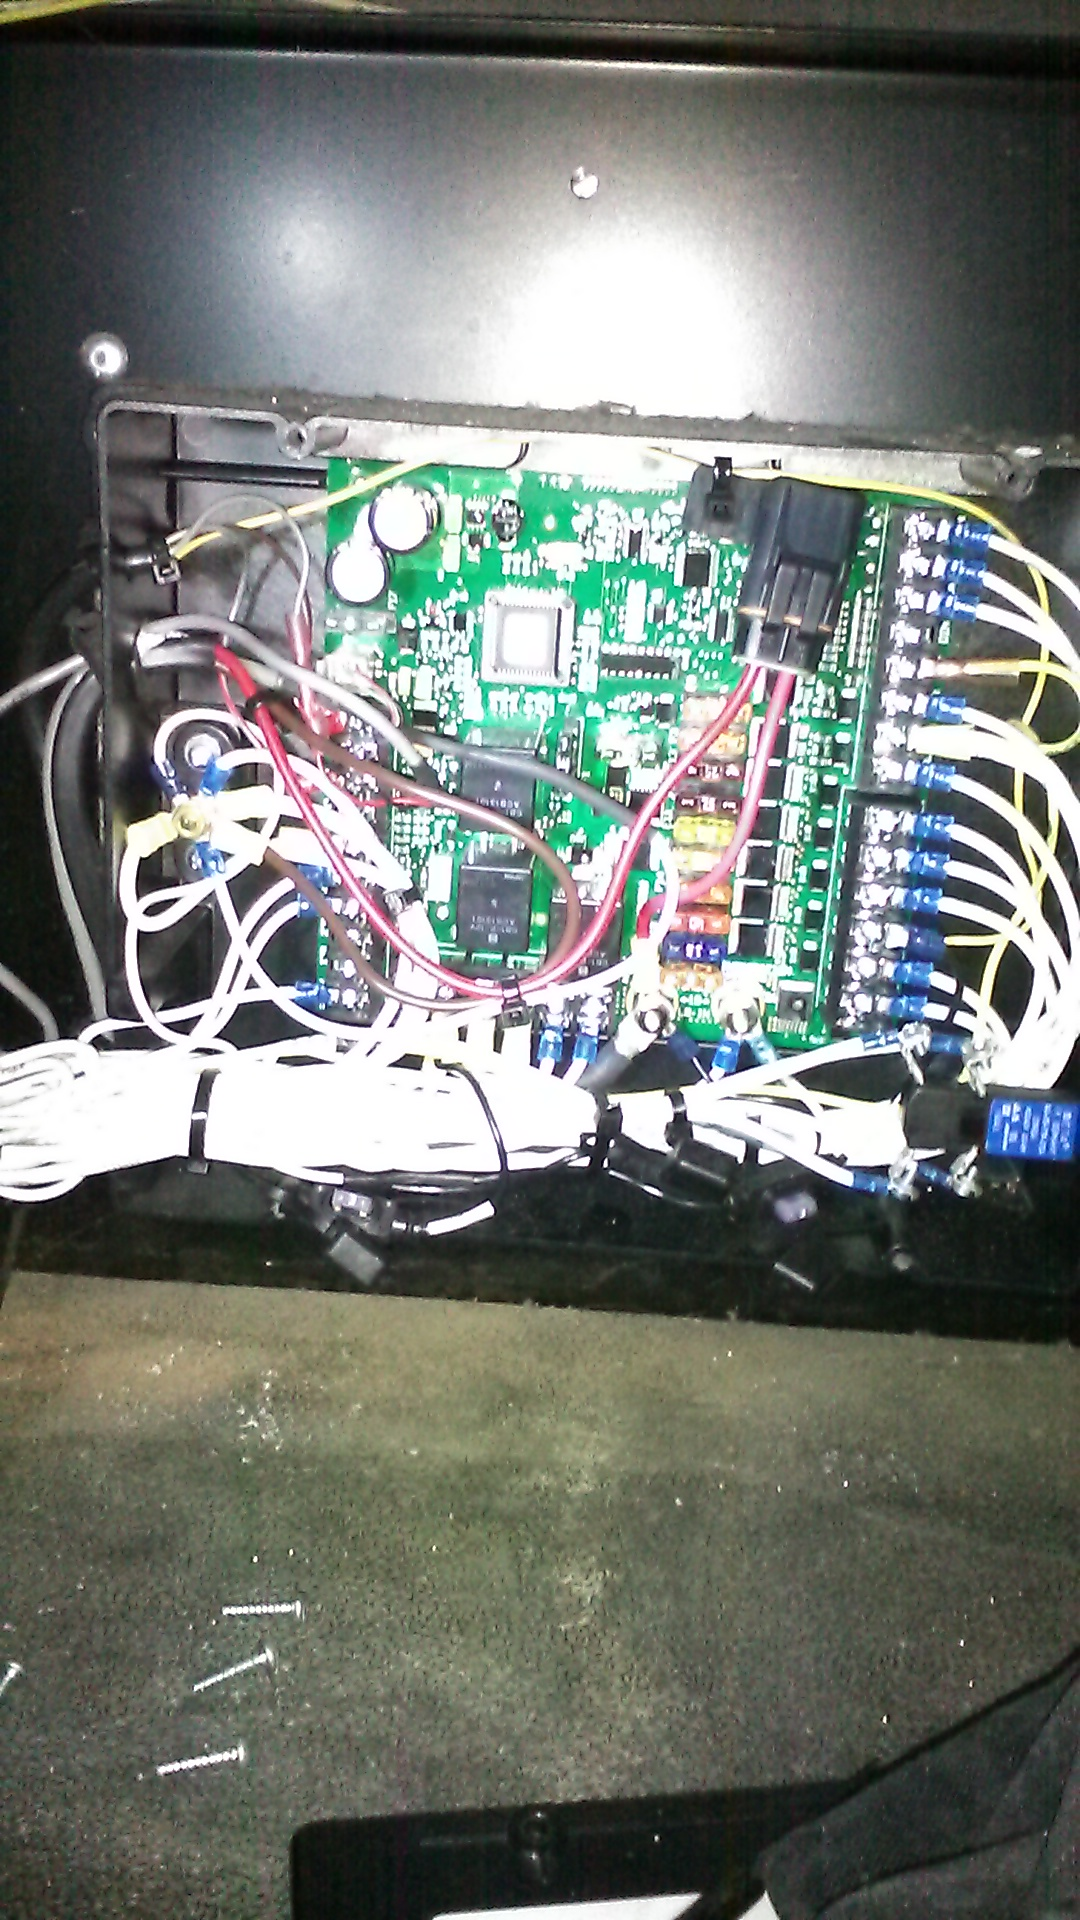 1485098220193 1949692882 i'm trying to figure out why my hmi for my tripac wont light up tri pac apu fuse box and diagram at soozxer.org